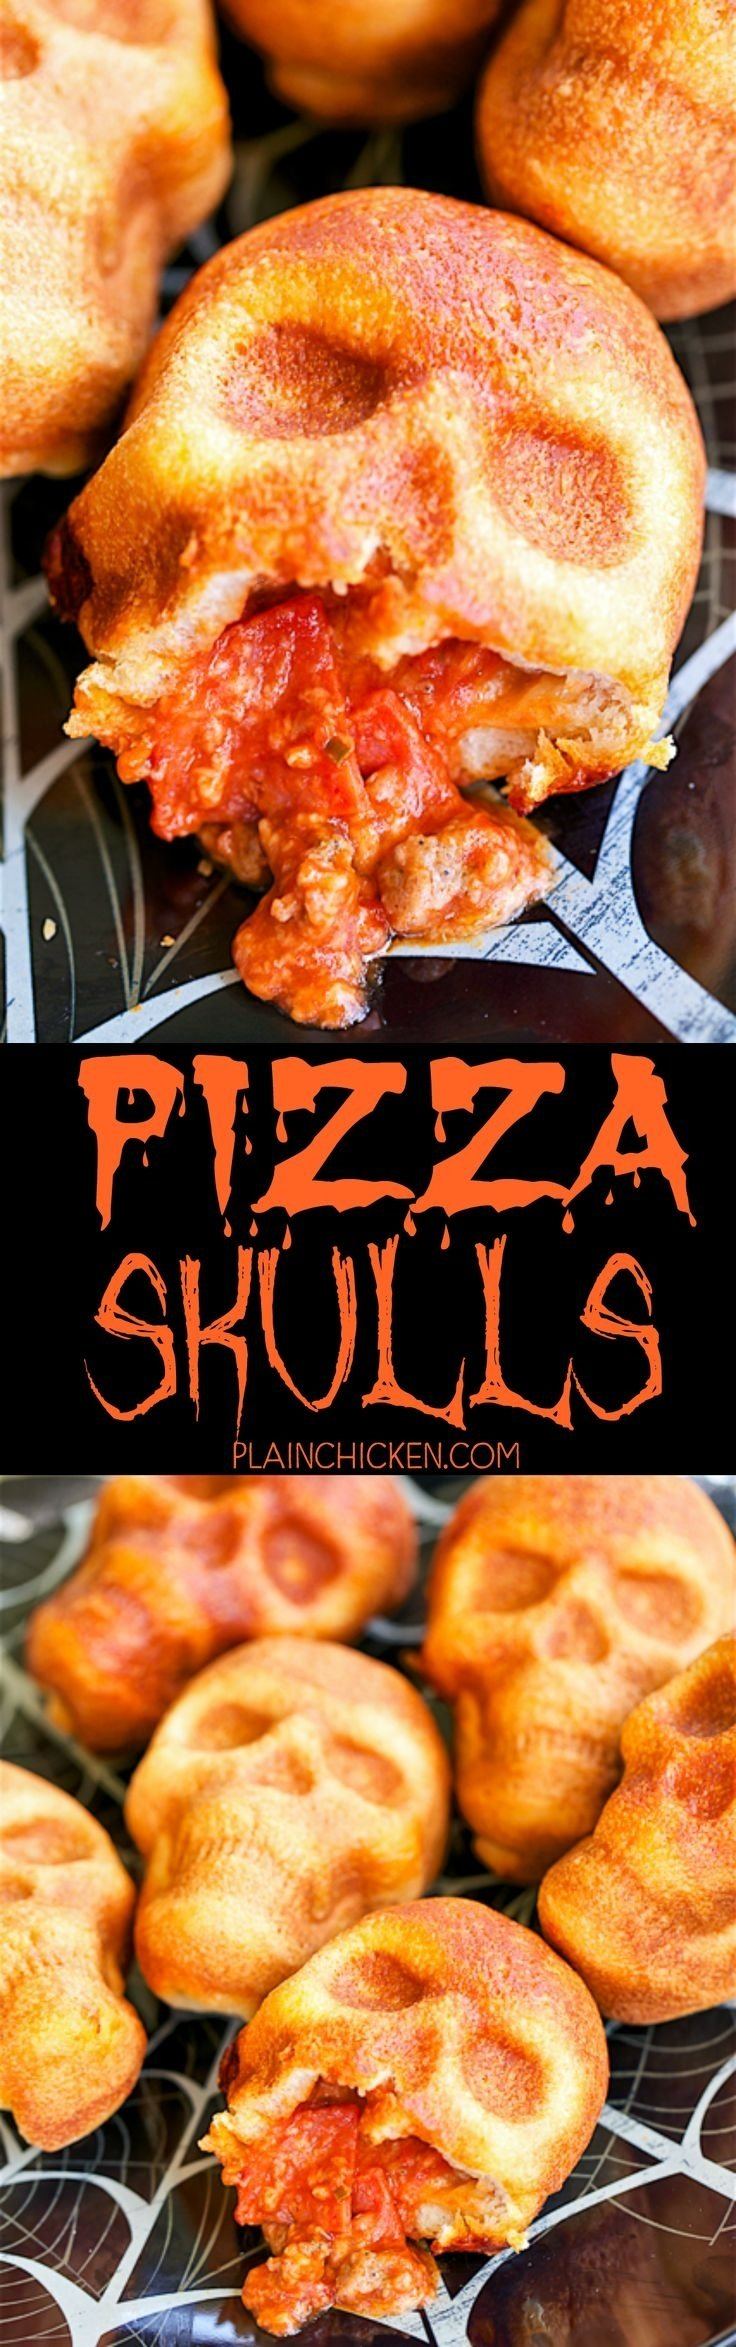 10 Most Popular Halloween Snack Ideas For Adults 13 best halloween images on pinterest halloween foods male witch 2 2020